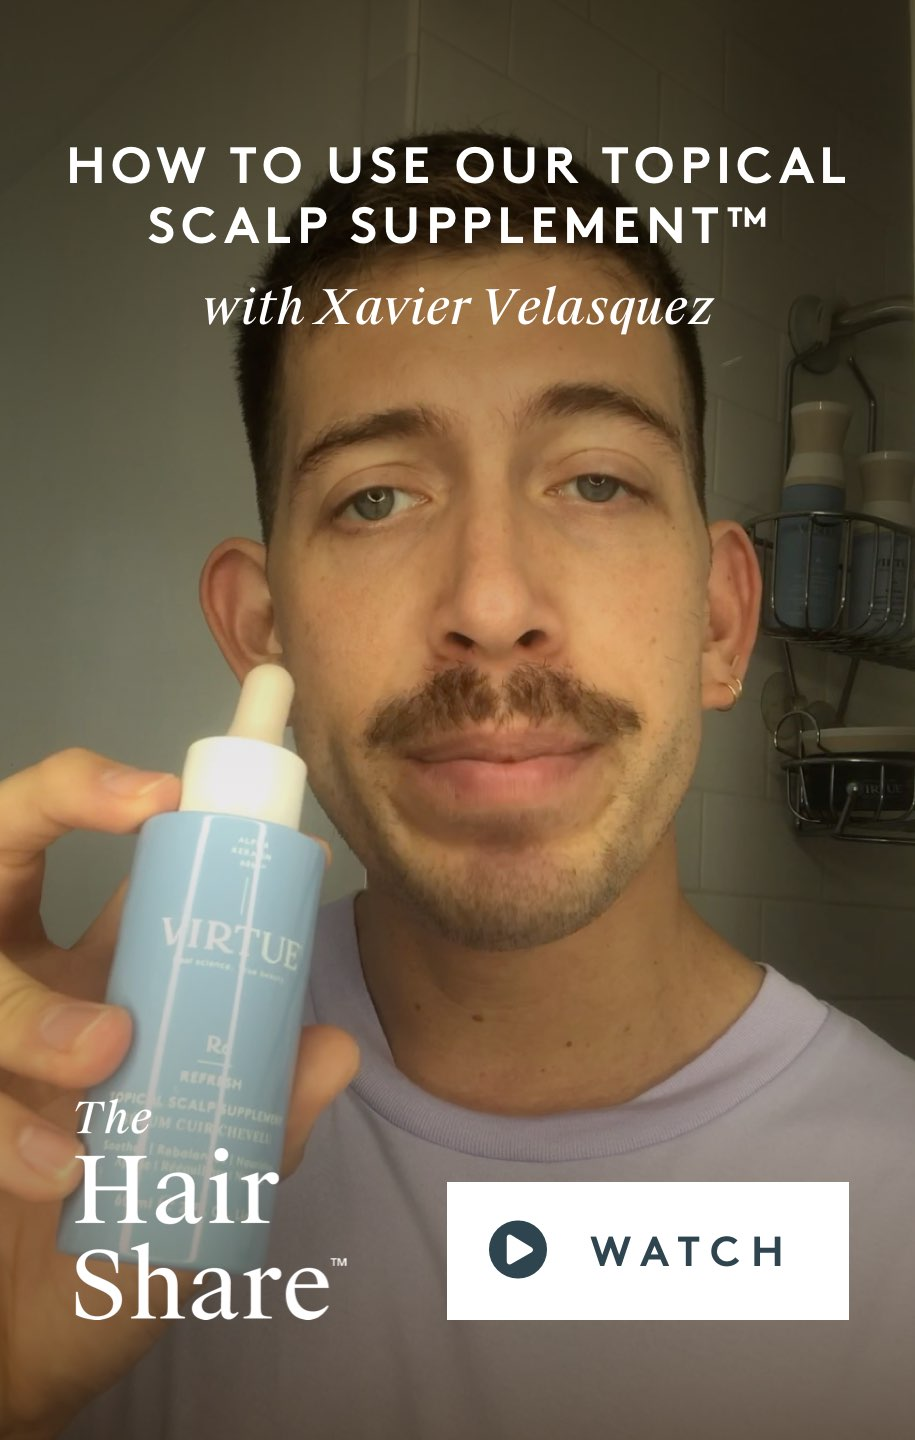 How To Use Our Topical Scalp Supplement™ With Xavier Velasquez